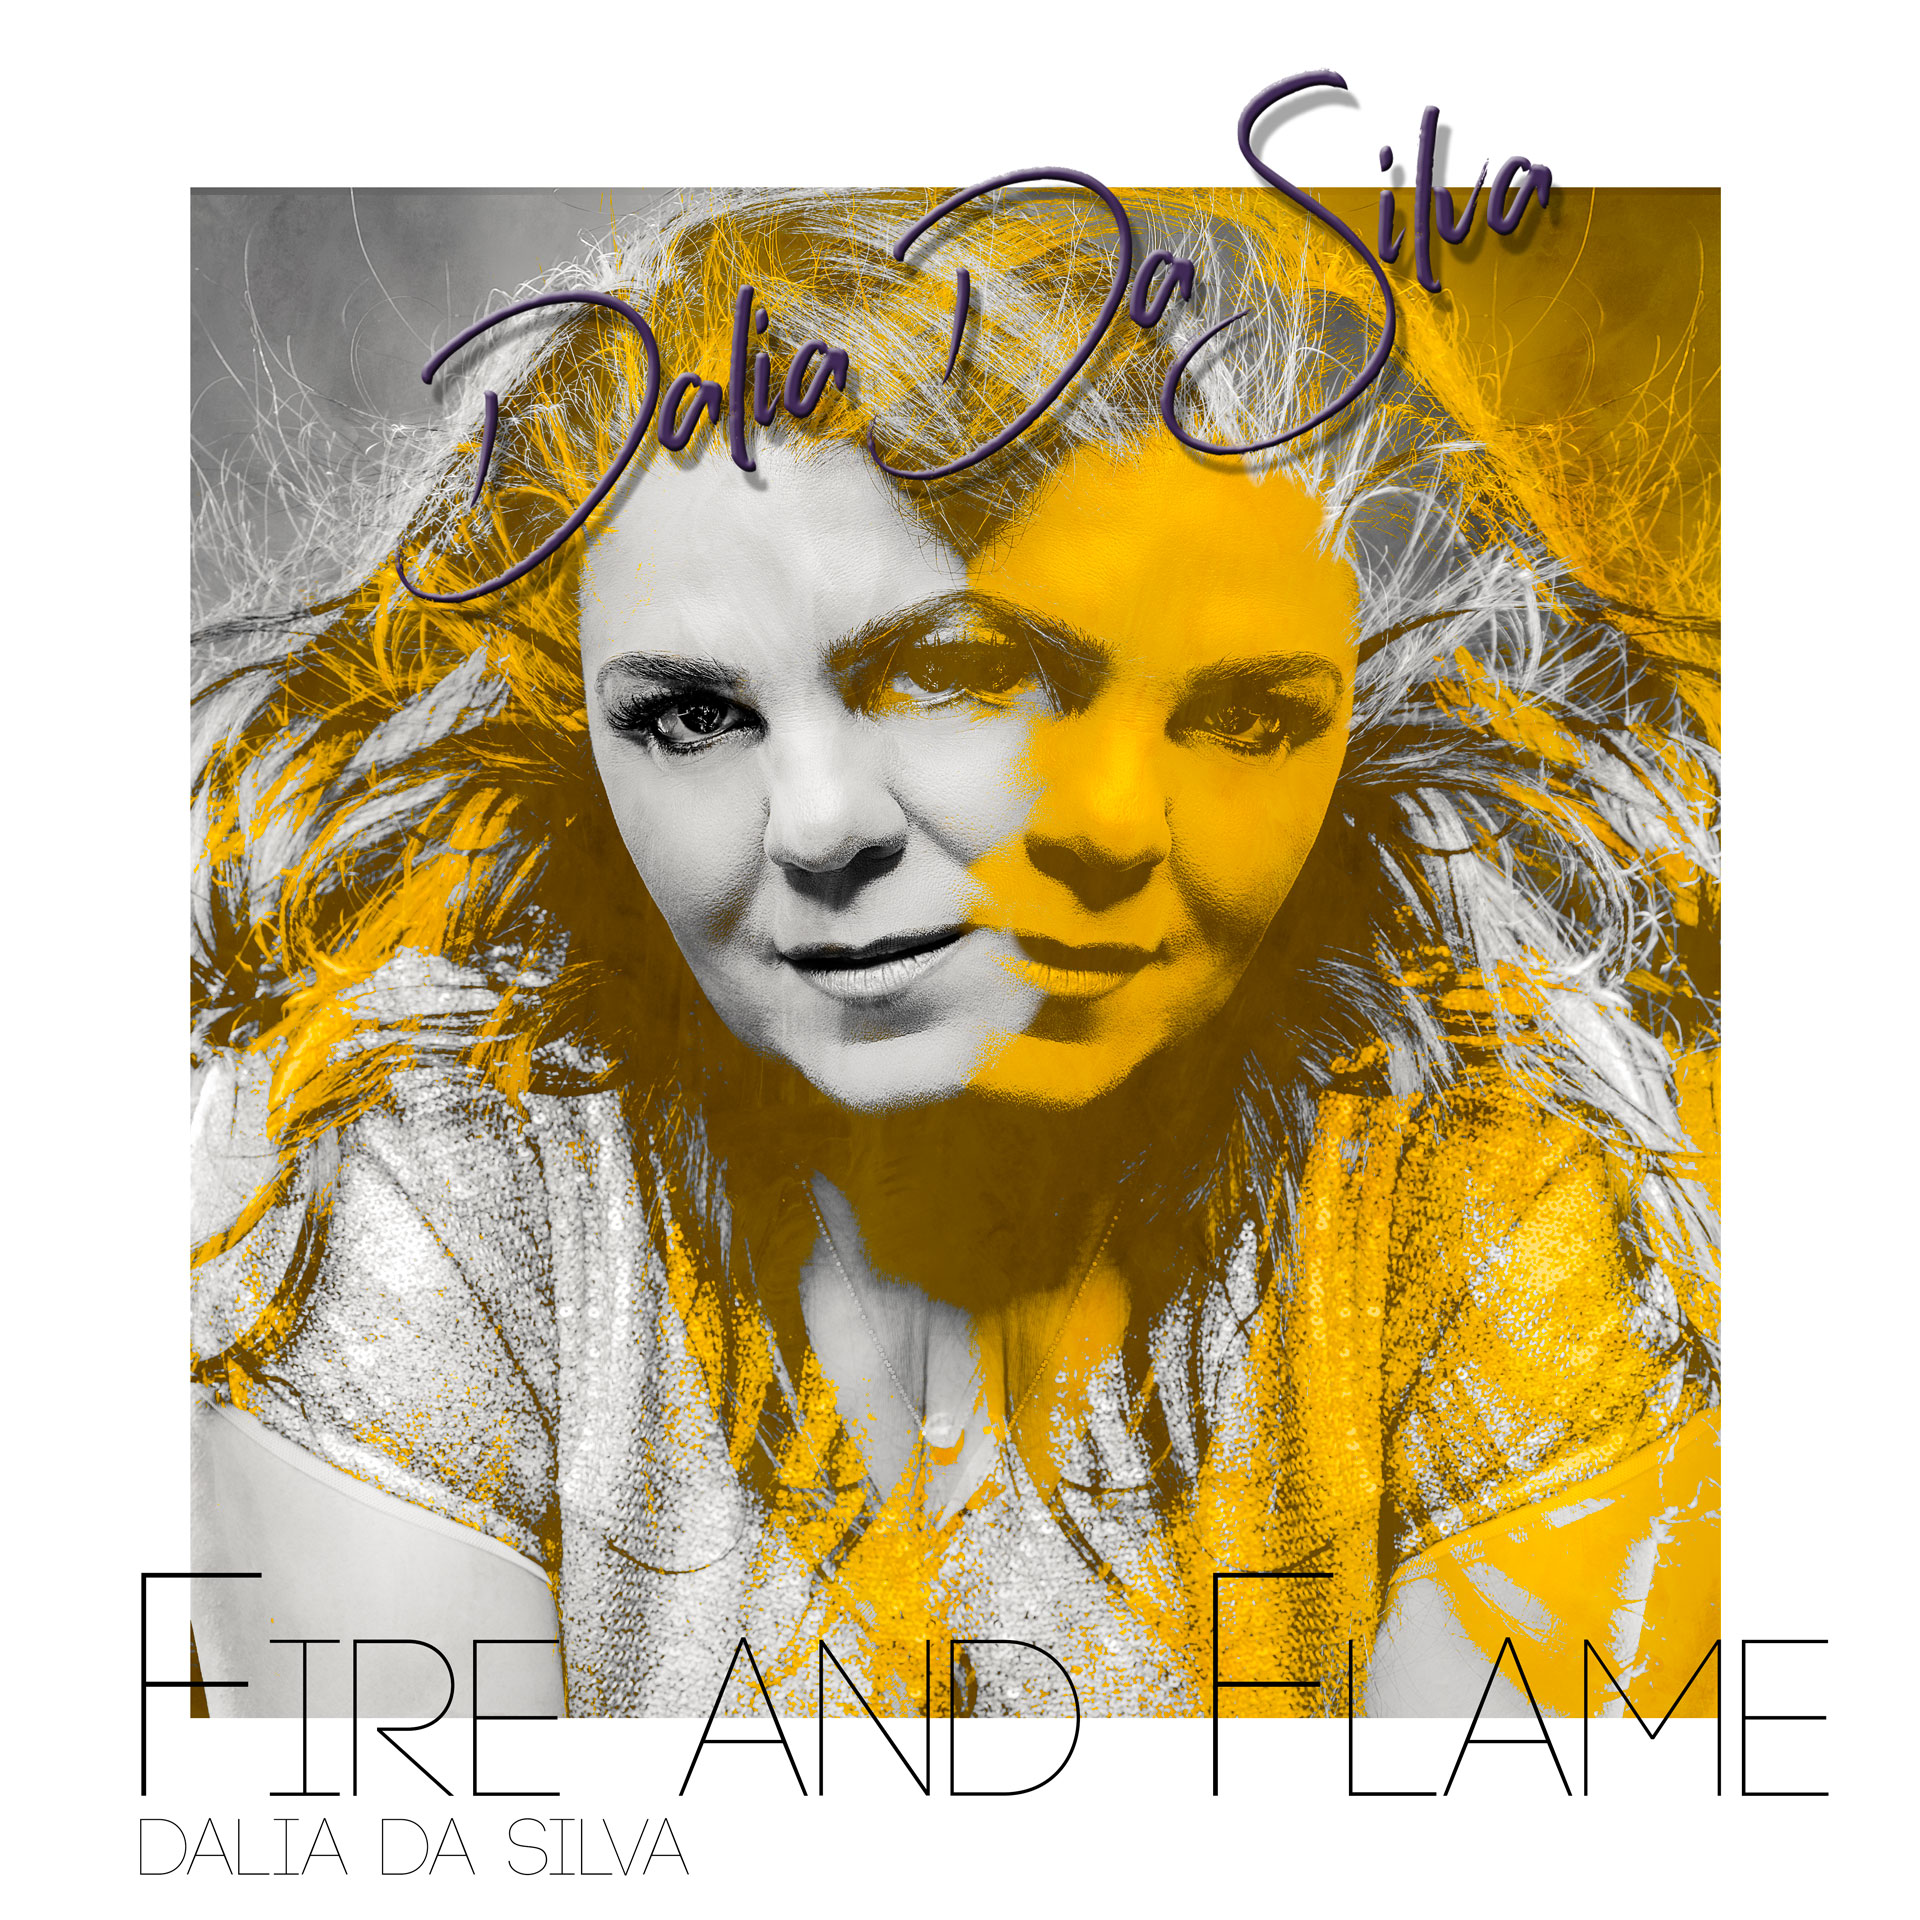 Faire_and_Flame_CD_Cover_Gelb_sw